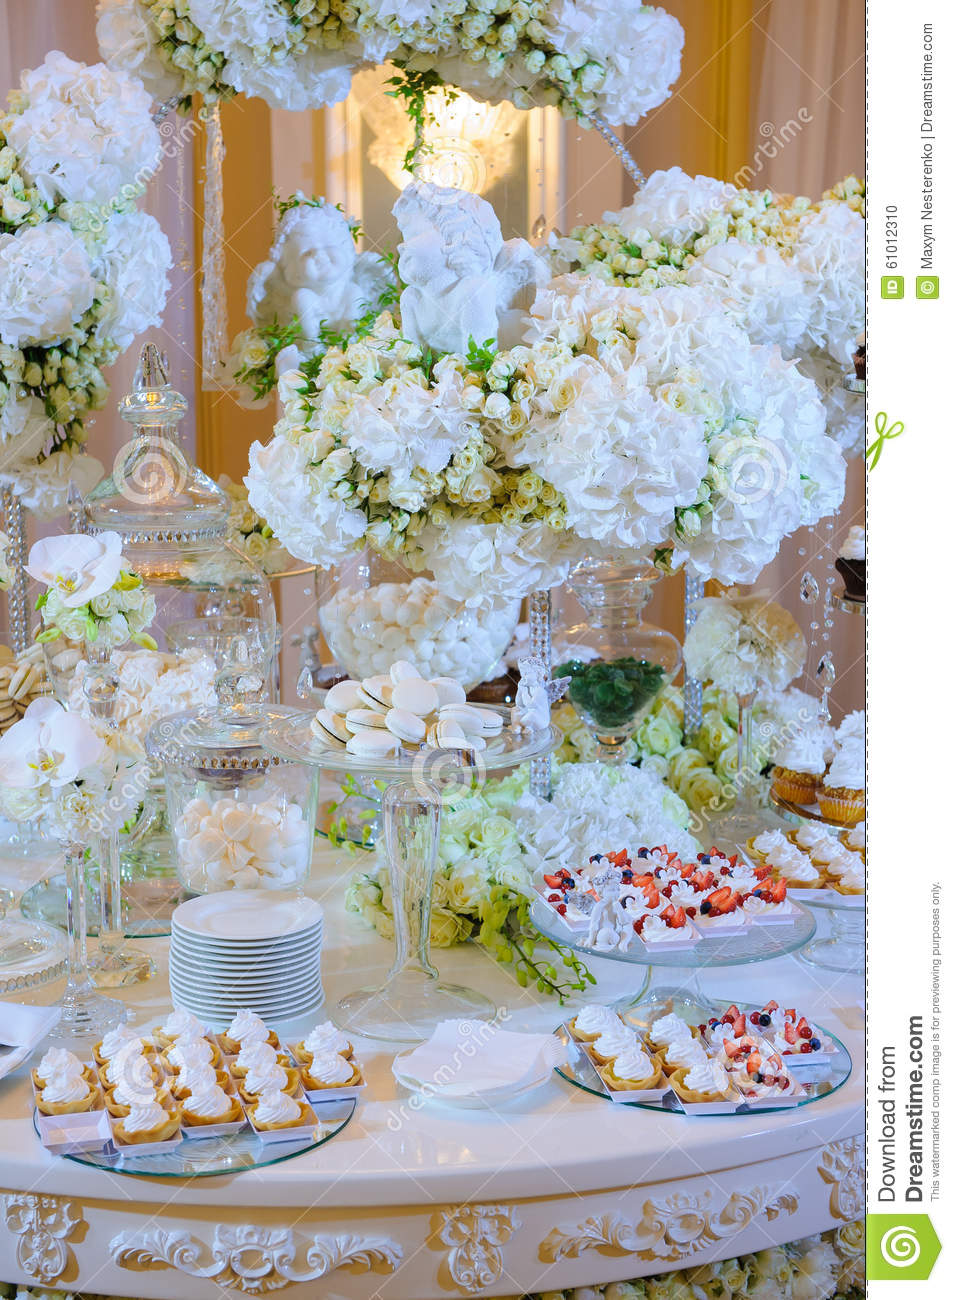 wedding cake dessert table photos wedding dessert table with cakes and white flowers stock 22520